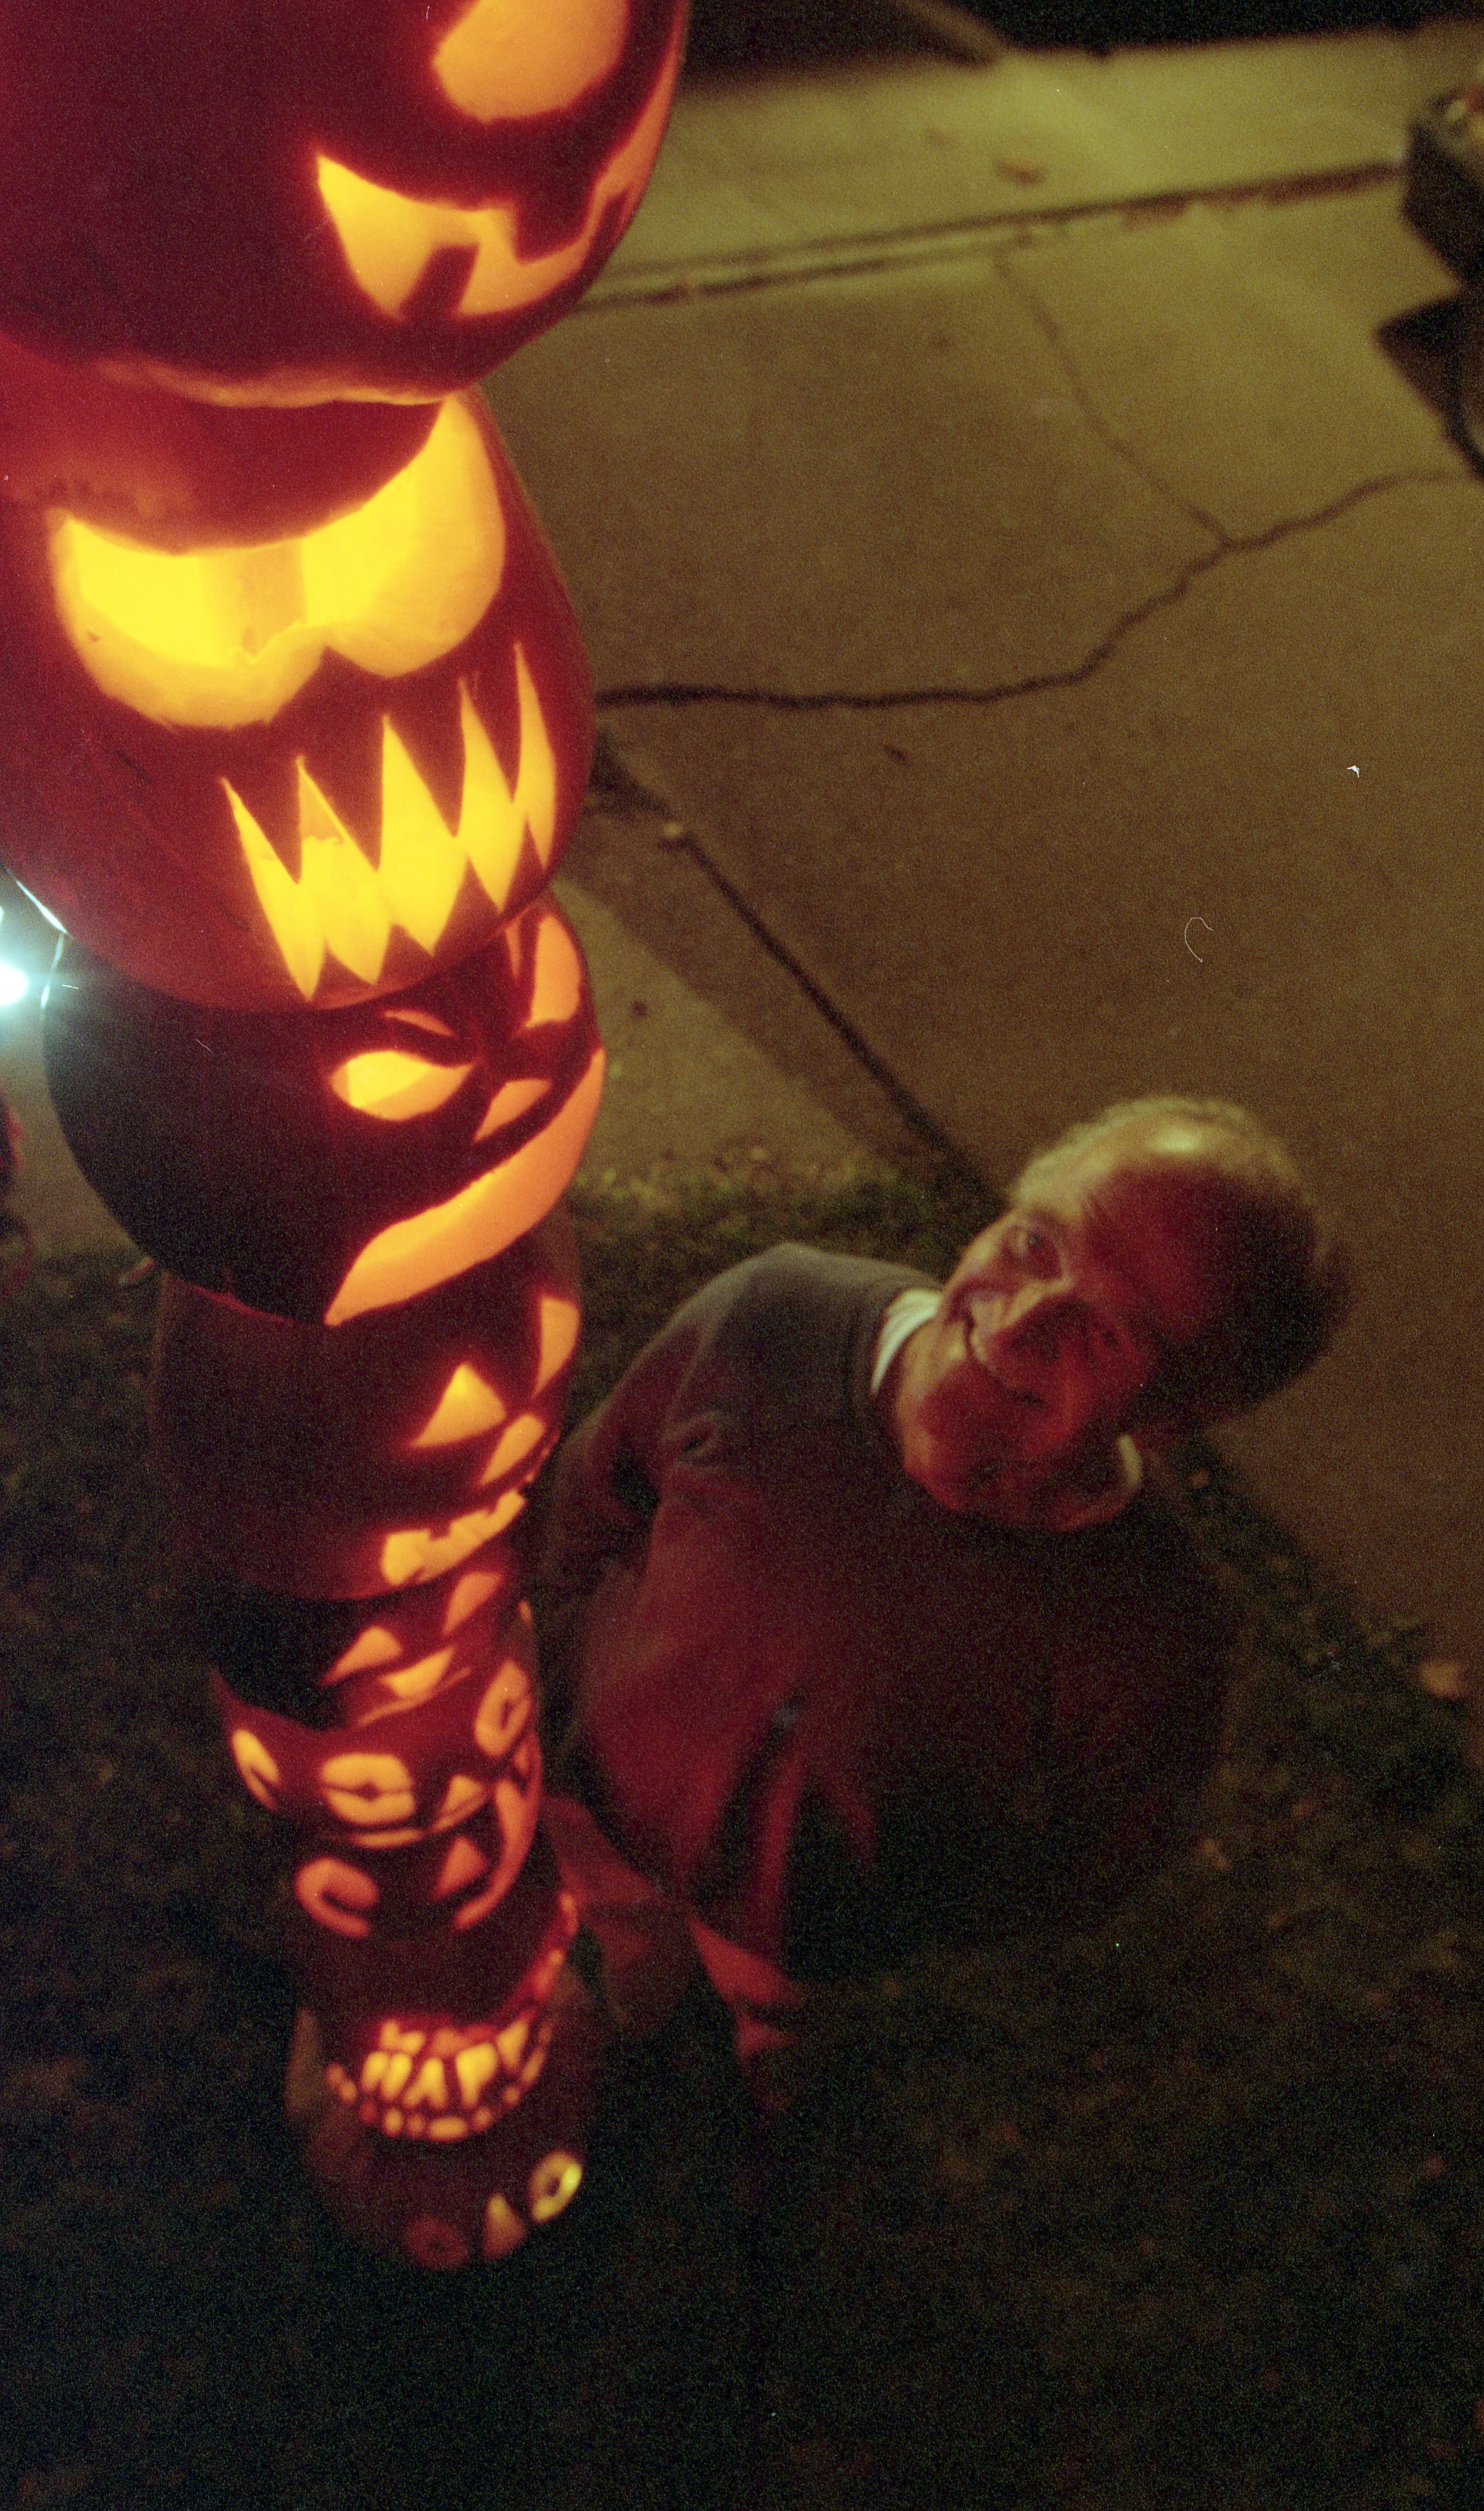 Dan Long And His Pumpkin Pole, October 1997 image